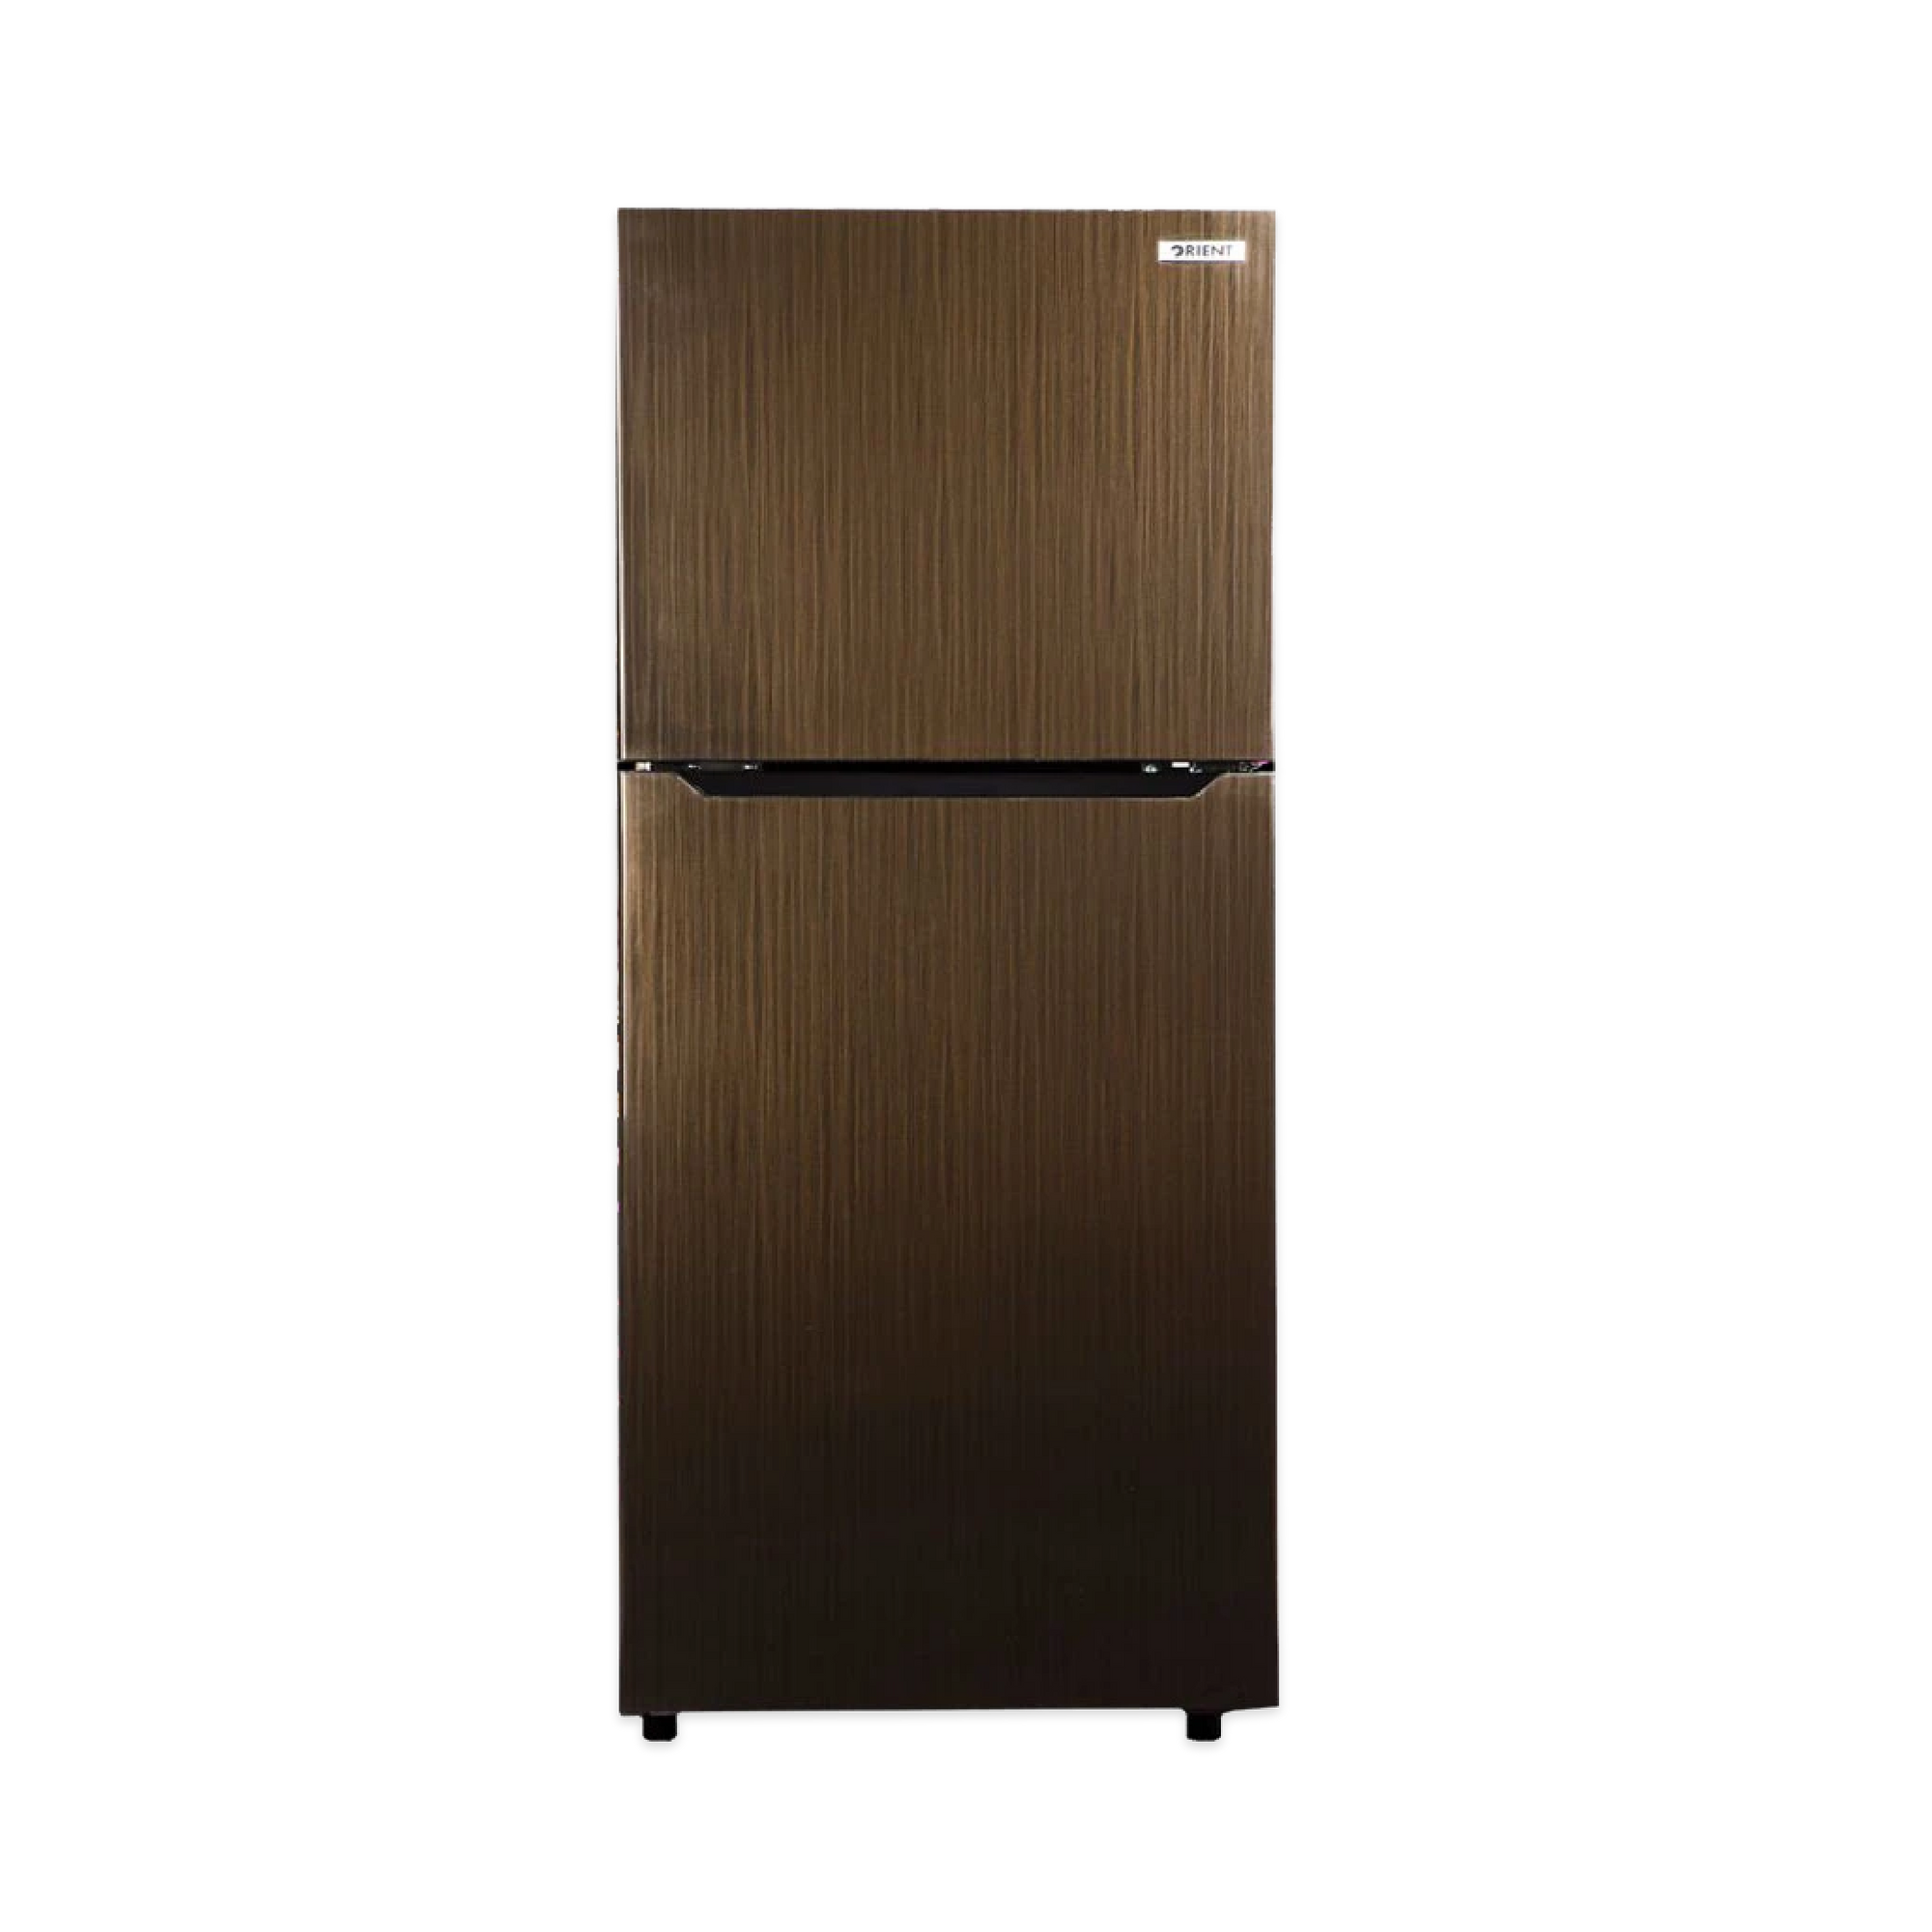 Grand 505 Liters Refrigerators